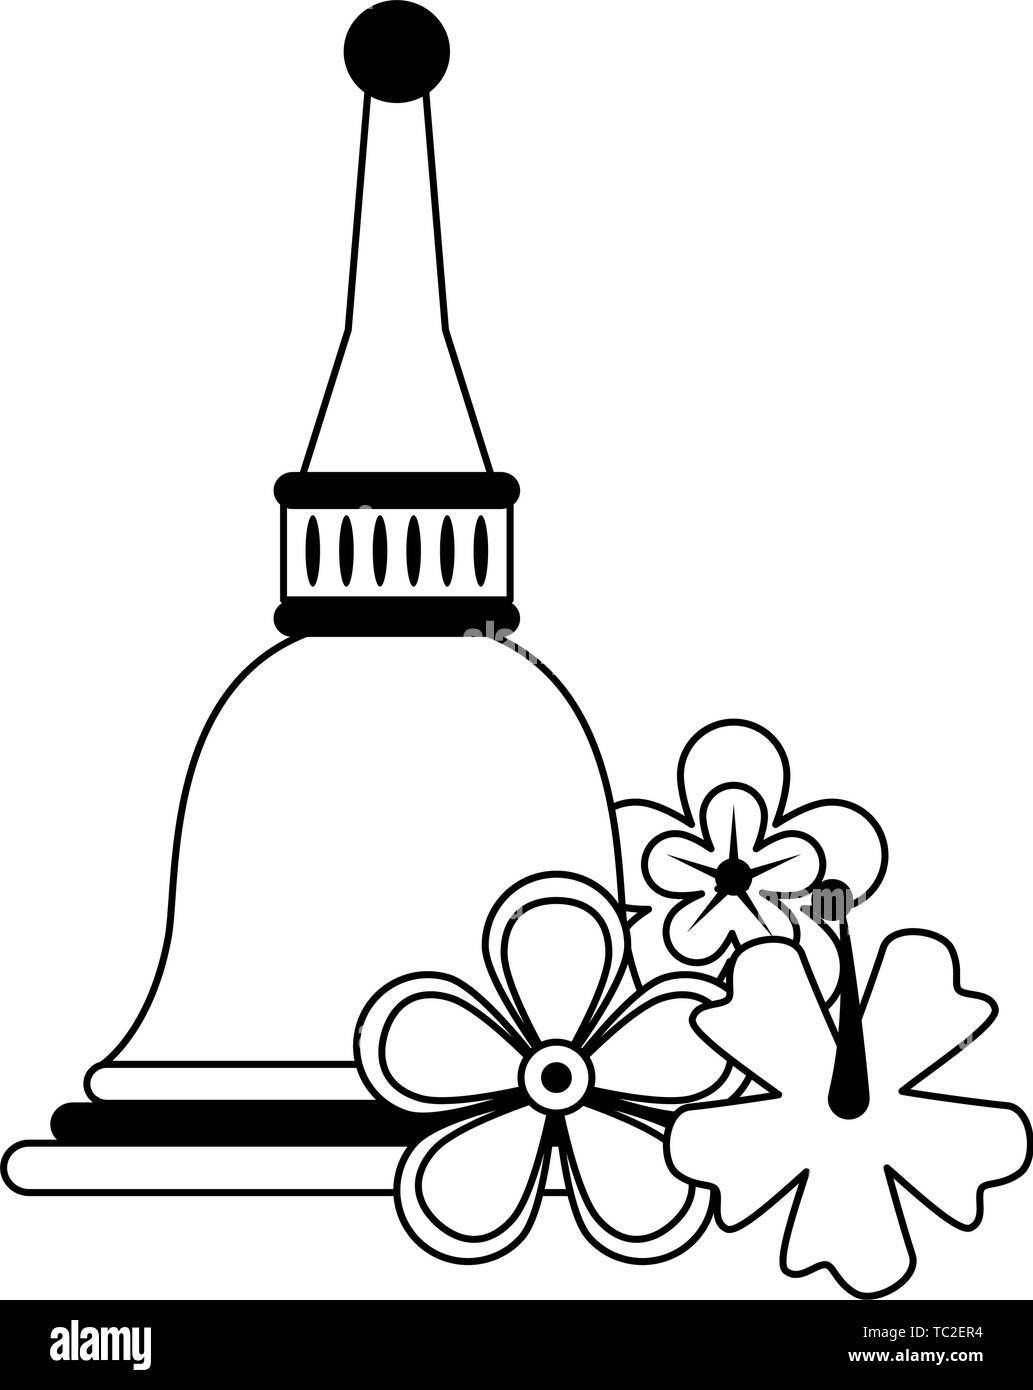 Cartoon Bell Black And White Stock Photos Amp Images